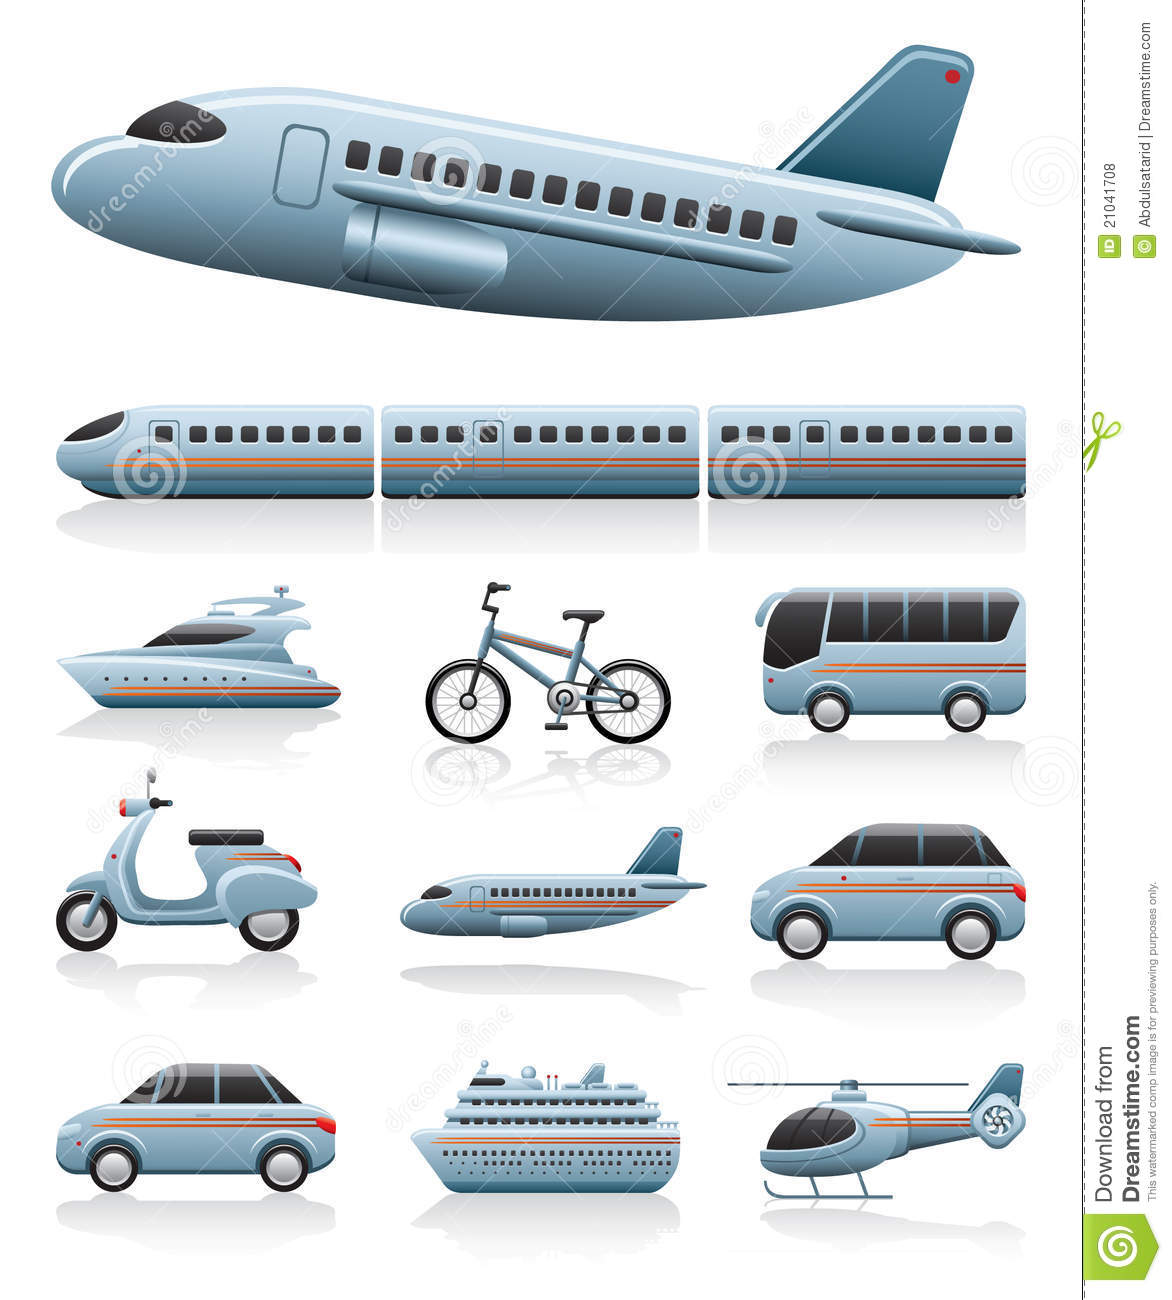 transportation icons royalty free stock photos image 21041708